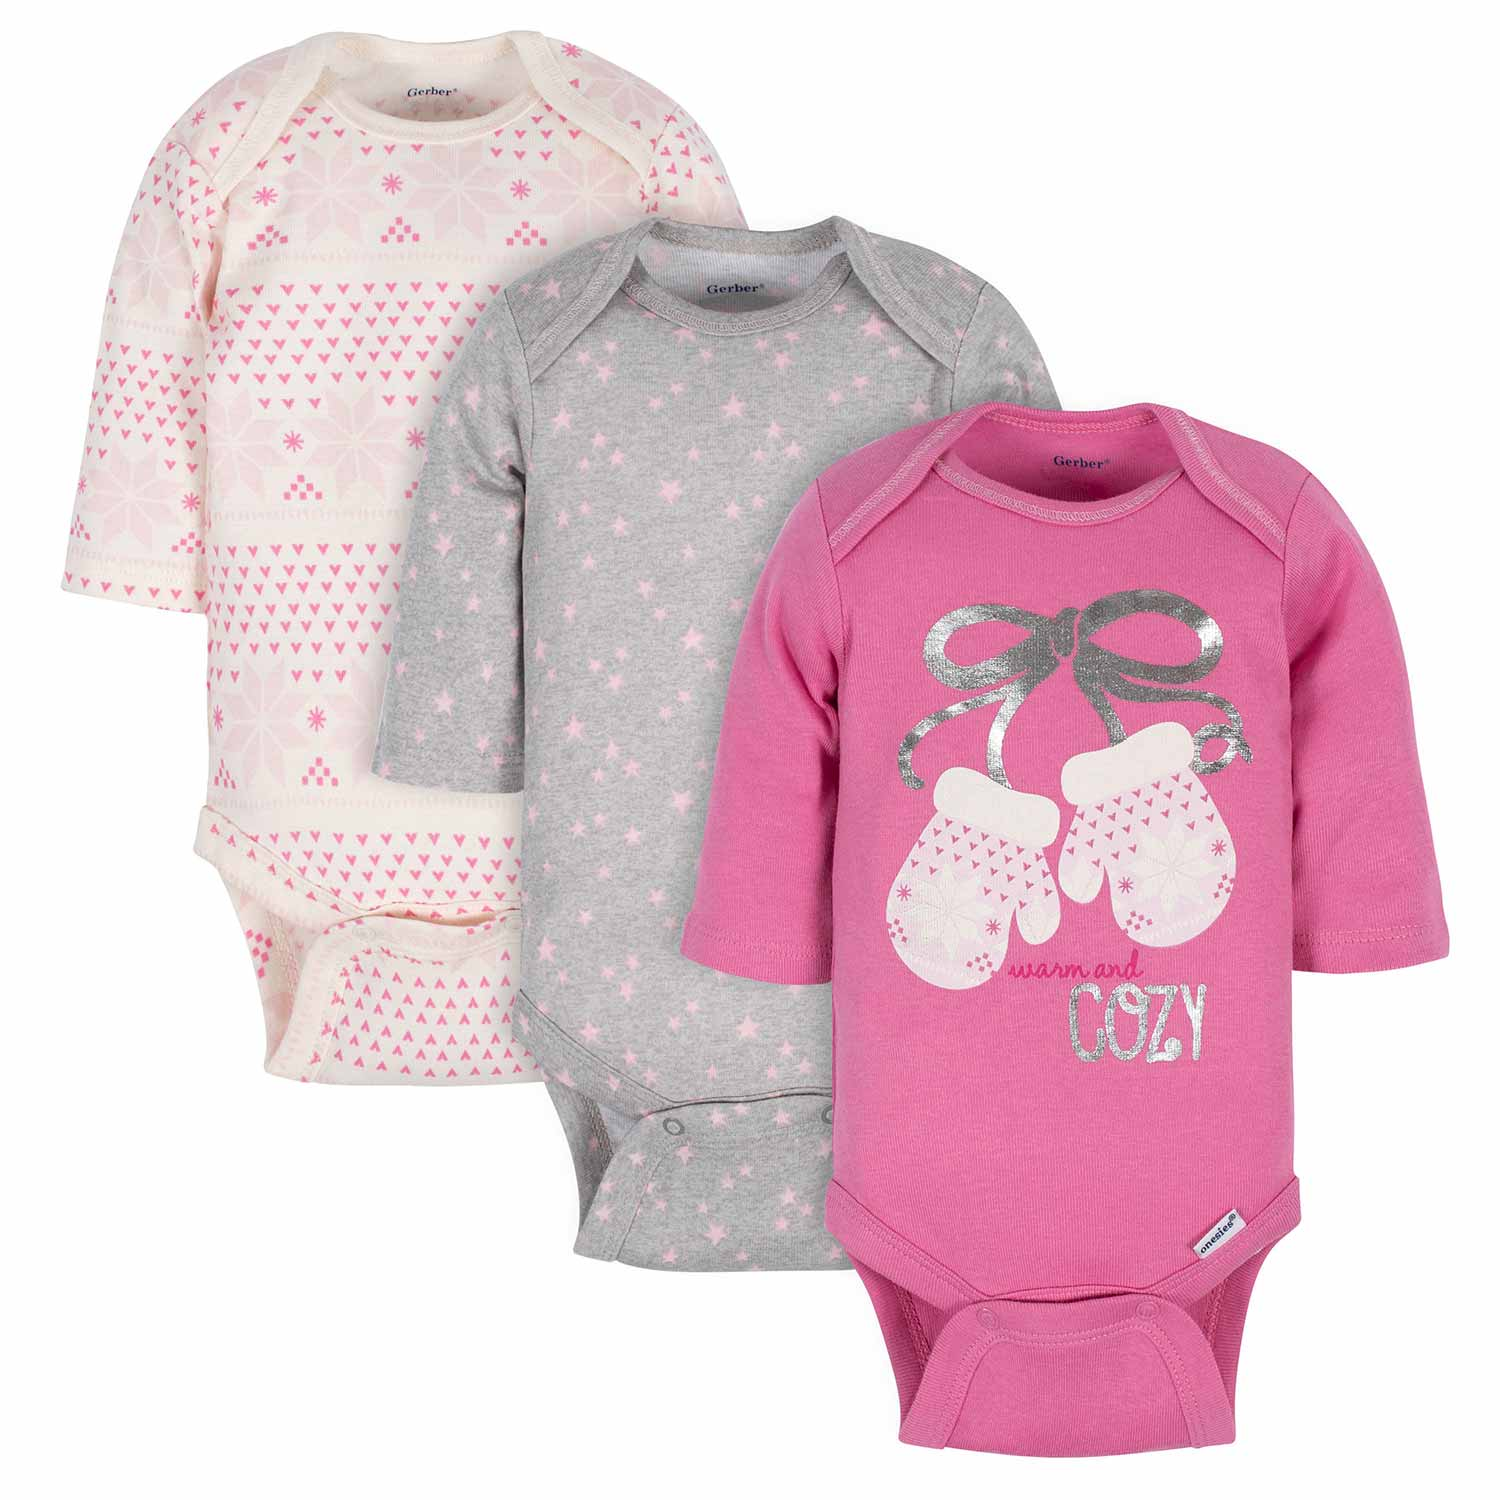 Gerber® 3-Pack Baby Girls Cozy Winter Long Sleeve Onesies® Bodysuits-Gerber Childrenswear